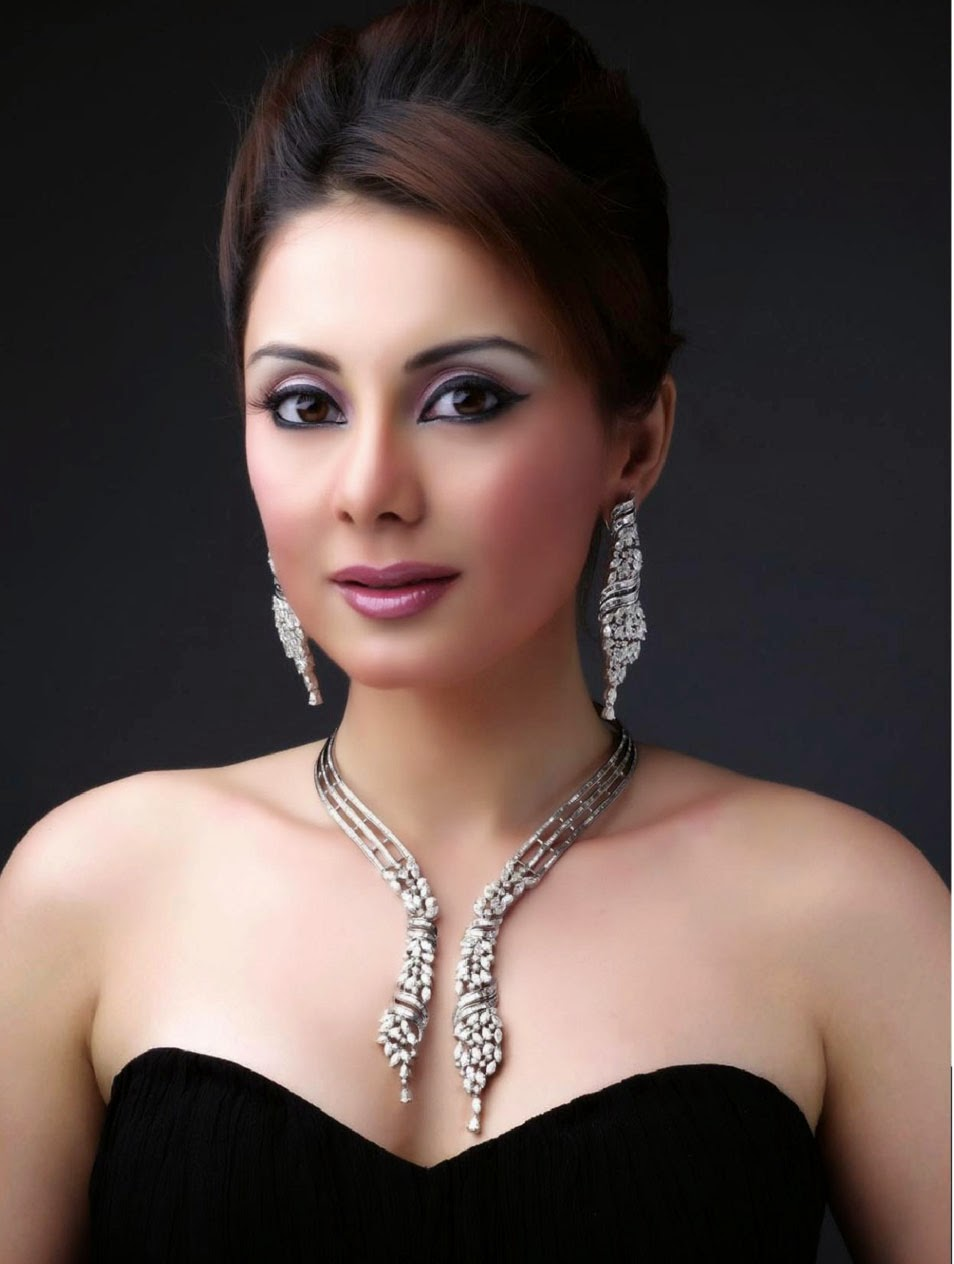 Minissha Lamba punjabi actress, Minissha Lamba new film photos, Minissha Lamba Biography wiki